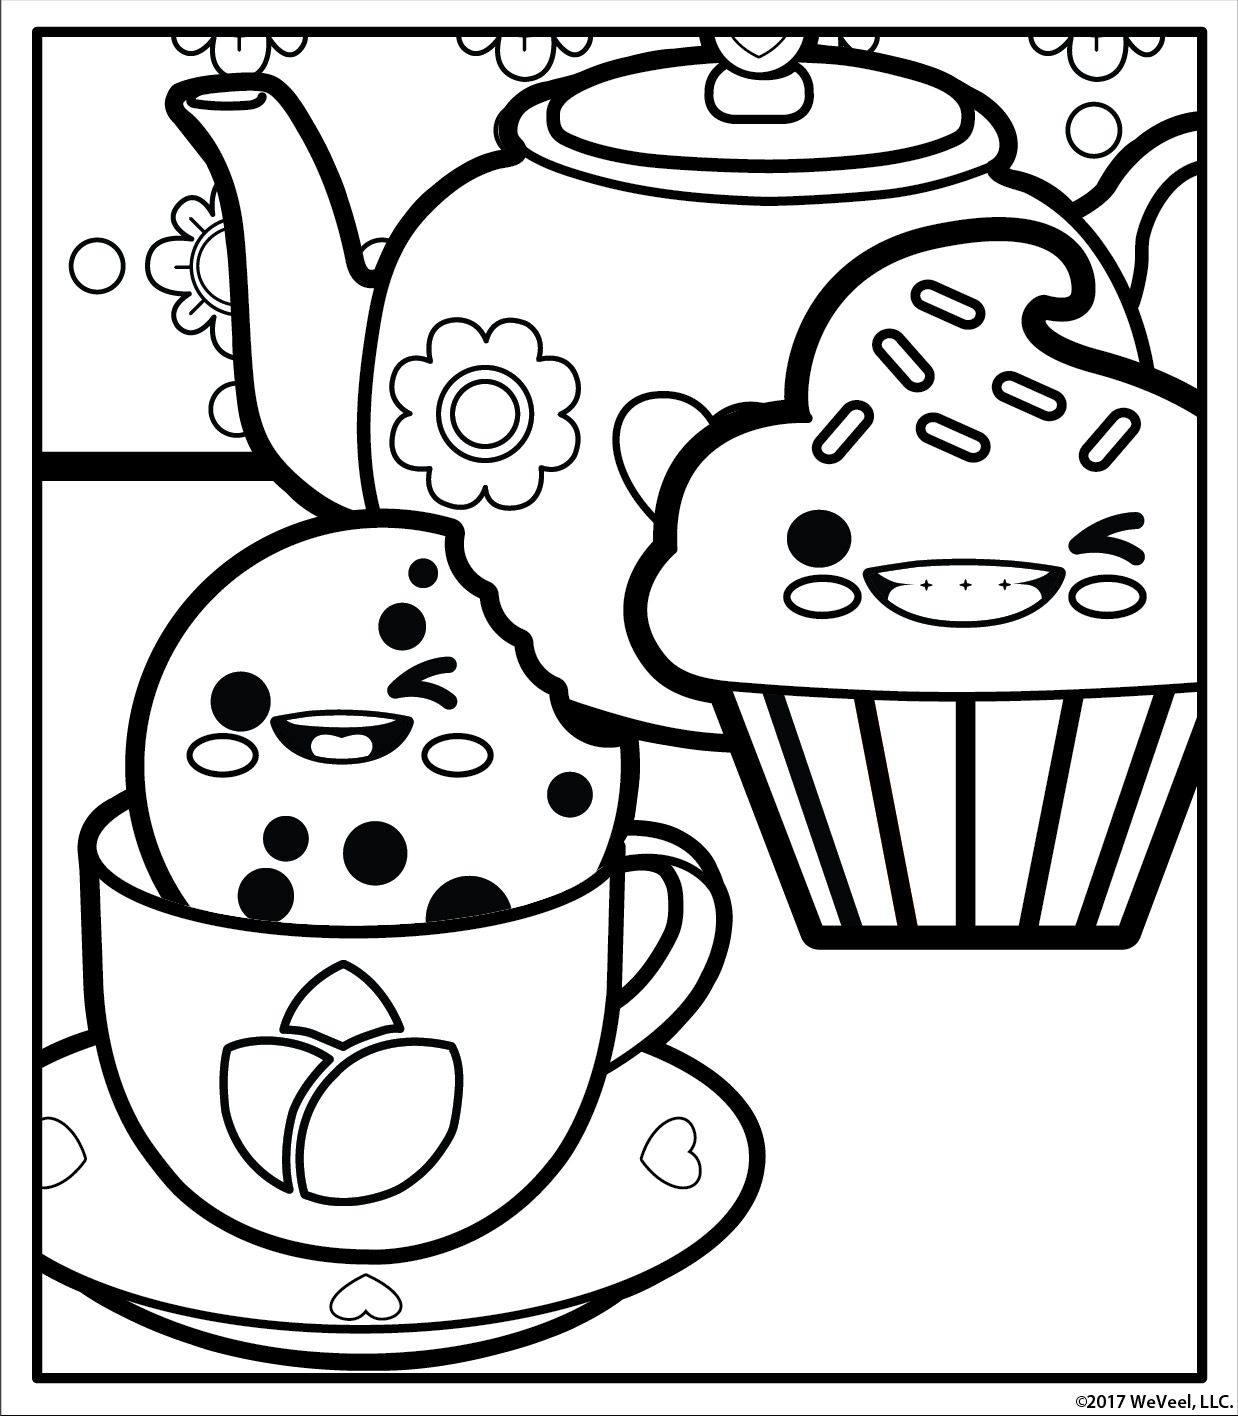 Free Printable Coloring Pages At Scentos Com Cute Girl Coloring Pages To Download And Print For Unicorn Coloring Pages Cute Coloring Pages Puppy Coloring Pages